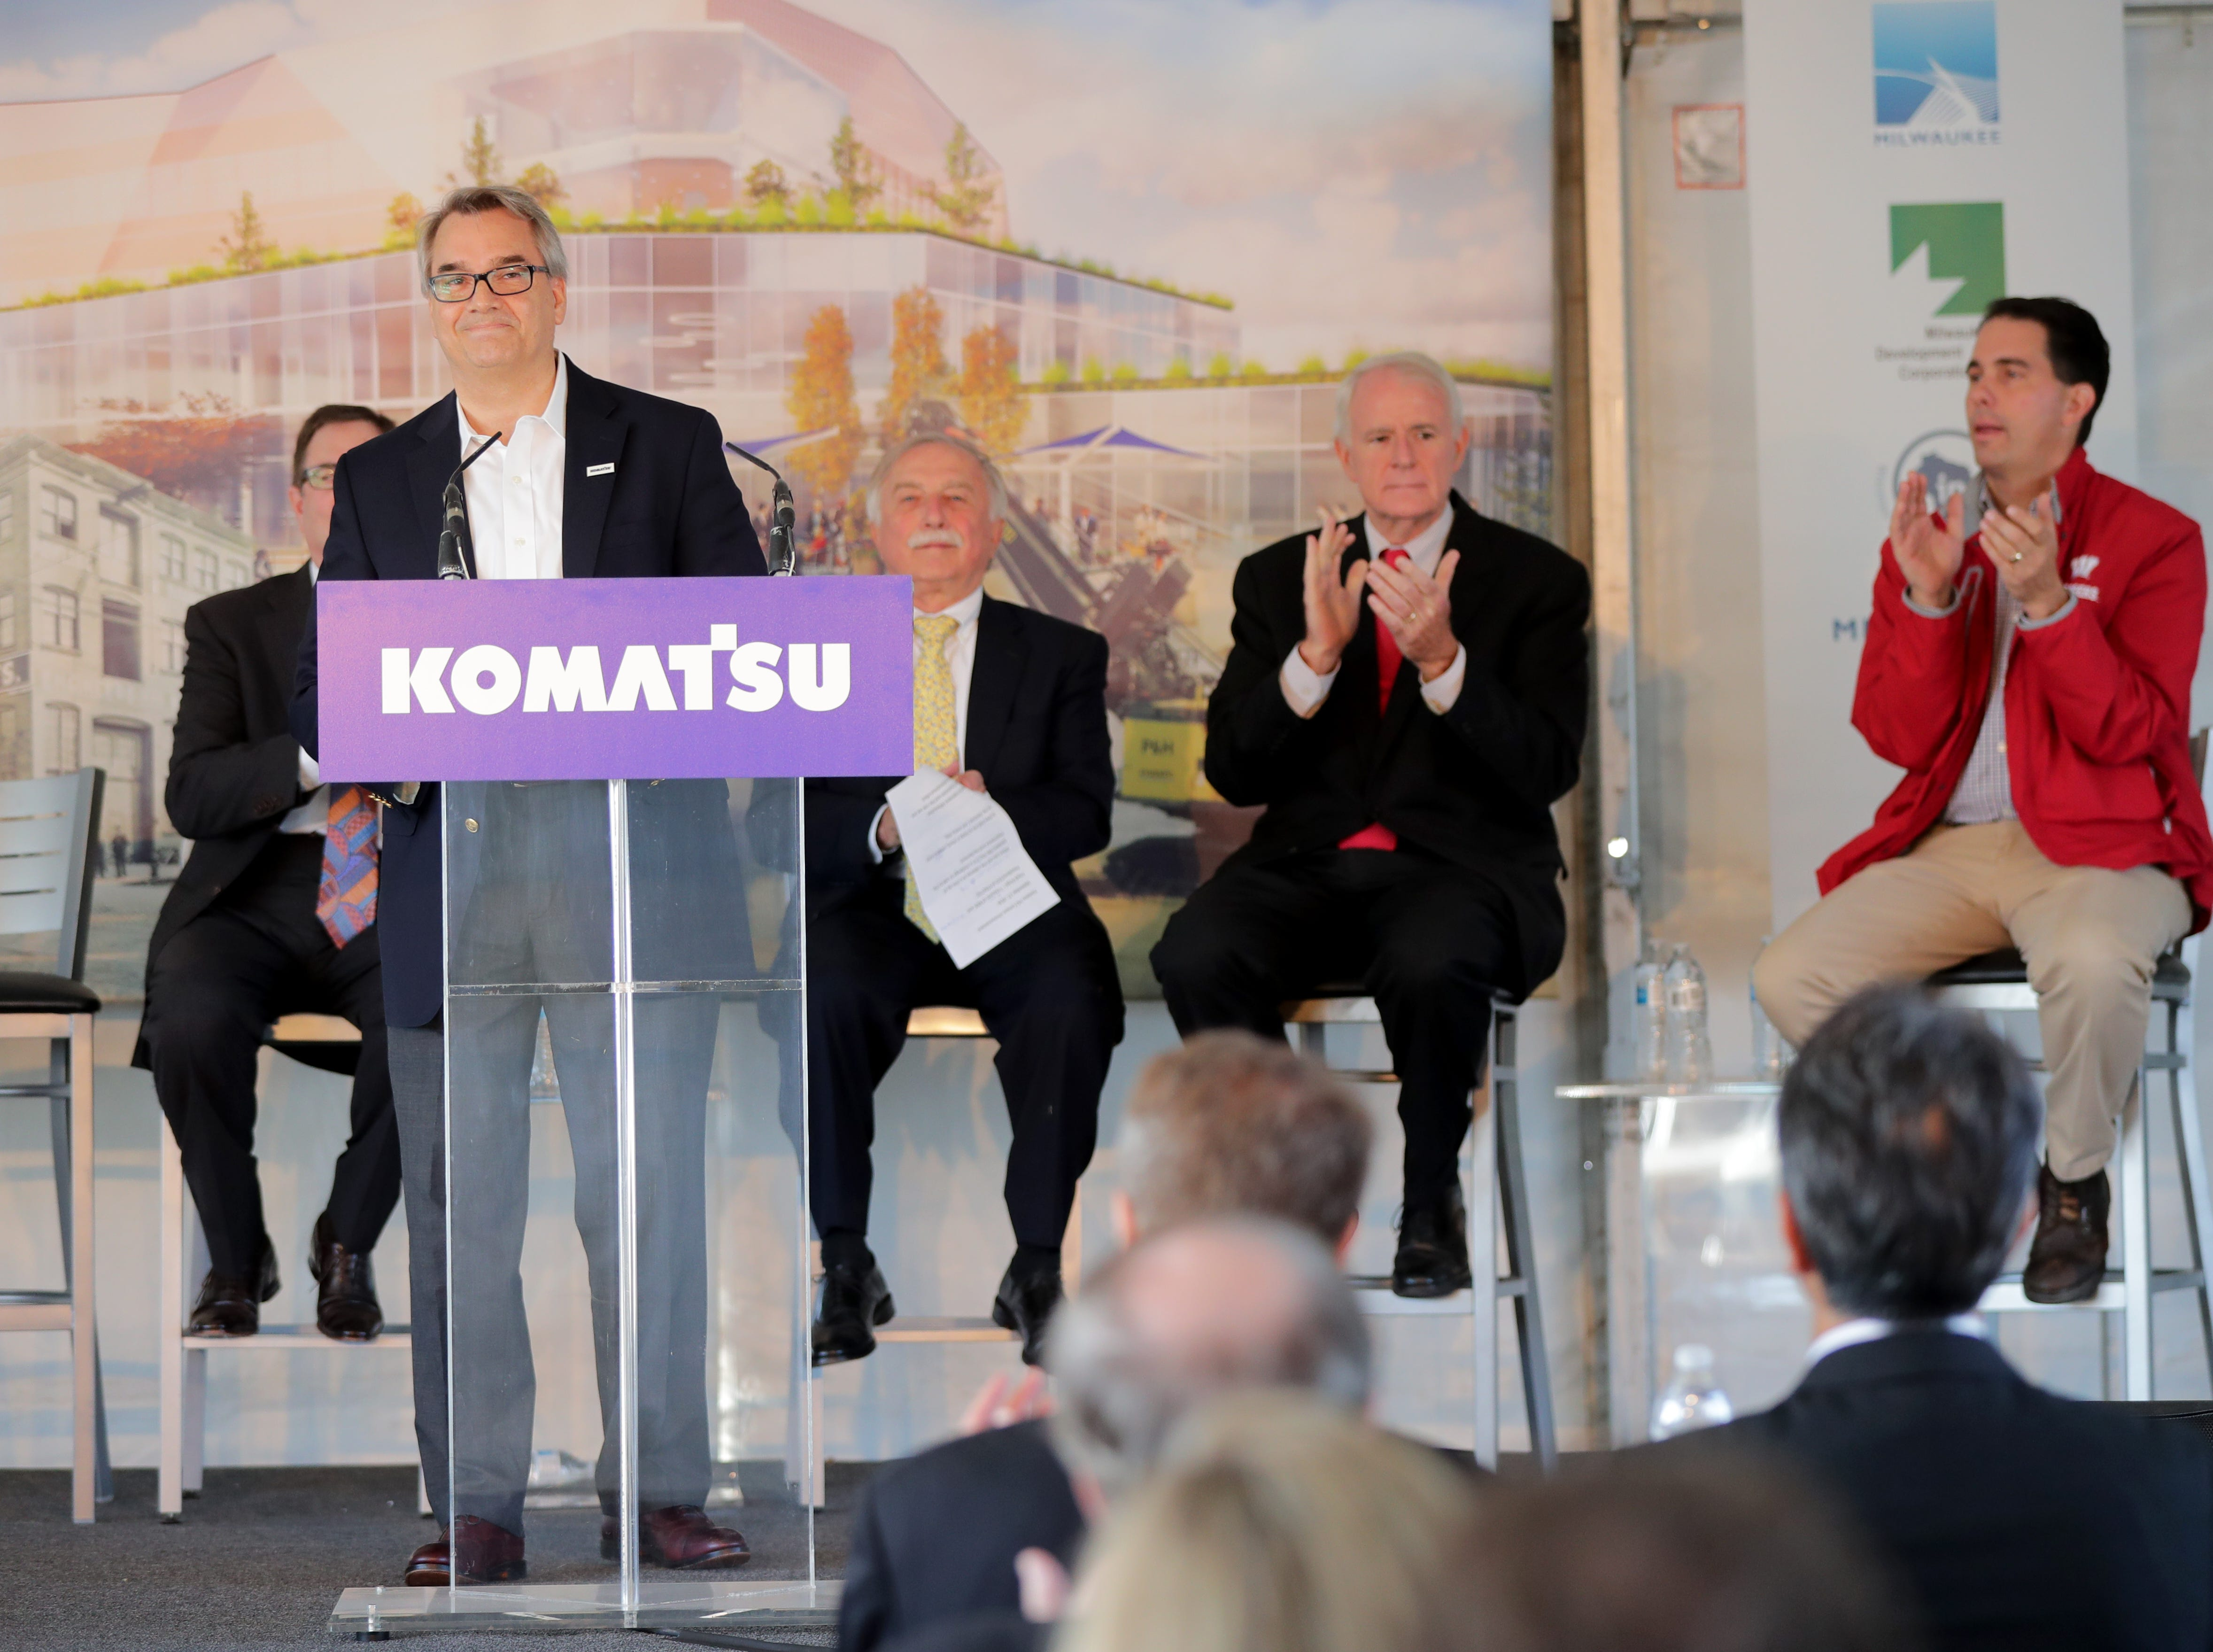 Jeff Dawes, president and CEO of Komatsu Mining Corp., is applauded after making the announcement that Komatsu Mining's $285 million Harbor District offices and factories will eventually total 1,000 jobs.